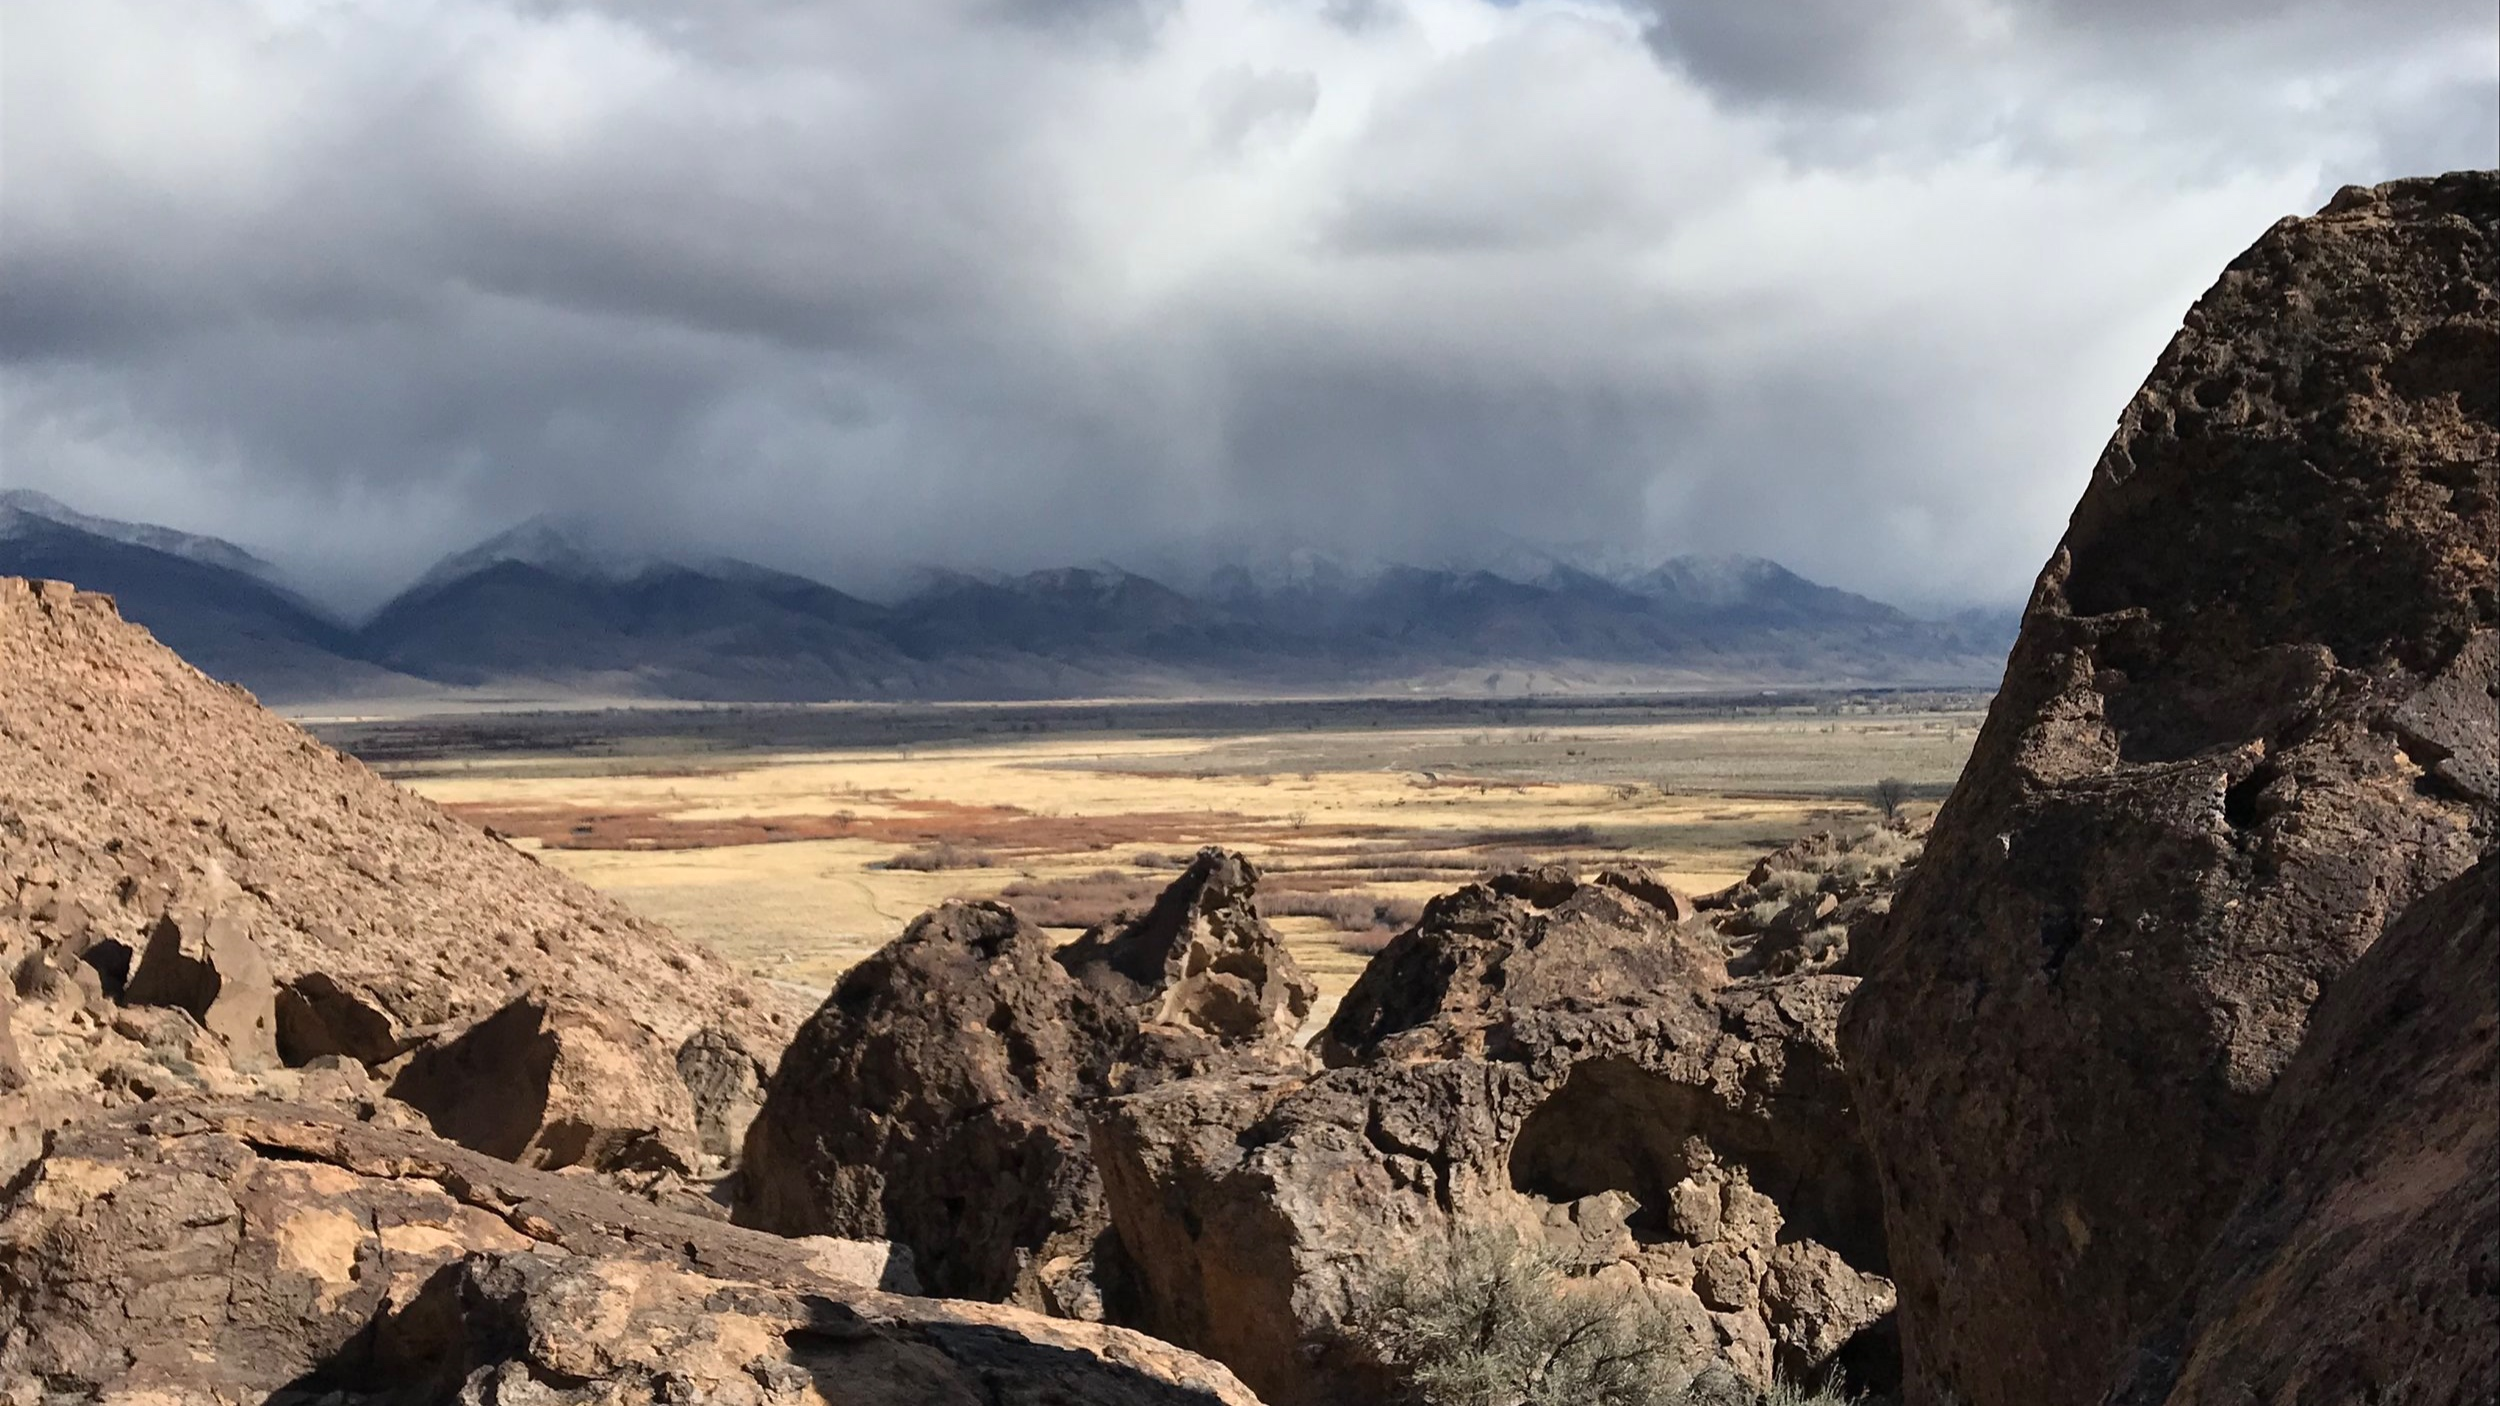 View from the Tablelands overlooking the Owens Valley. Bishop, CA